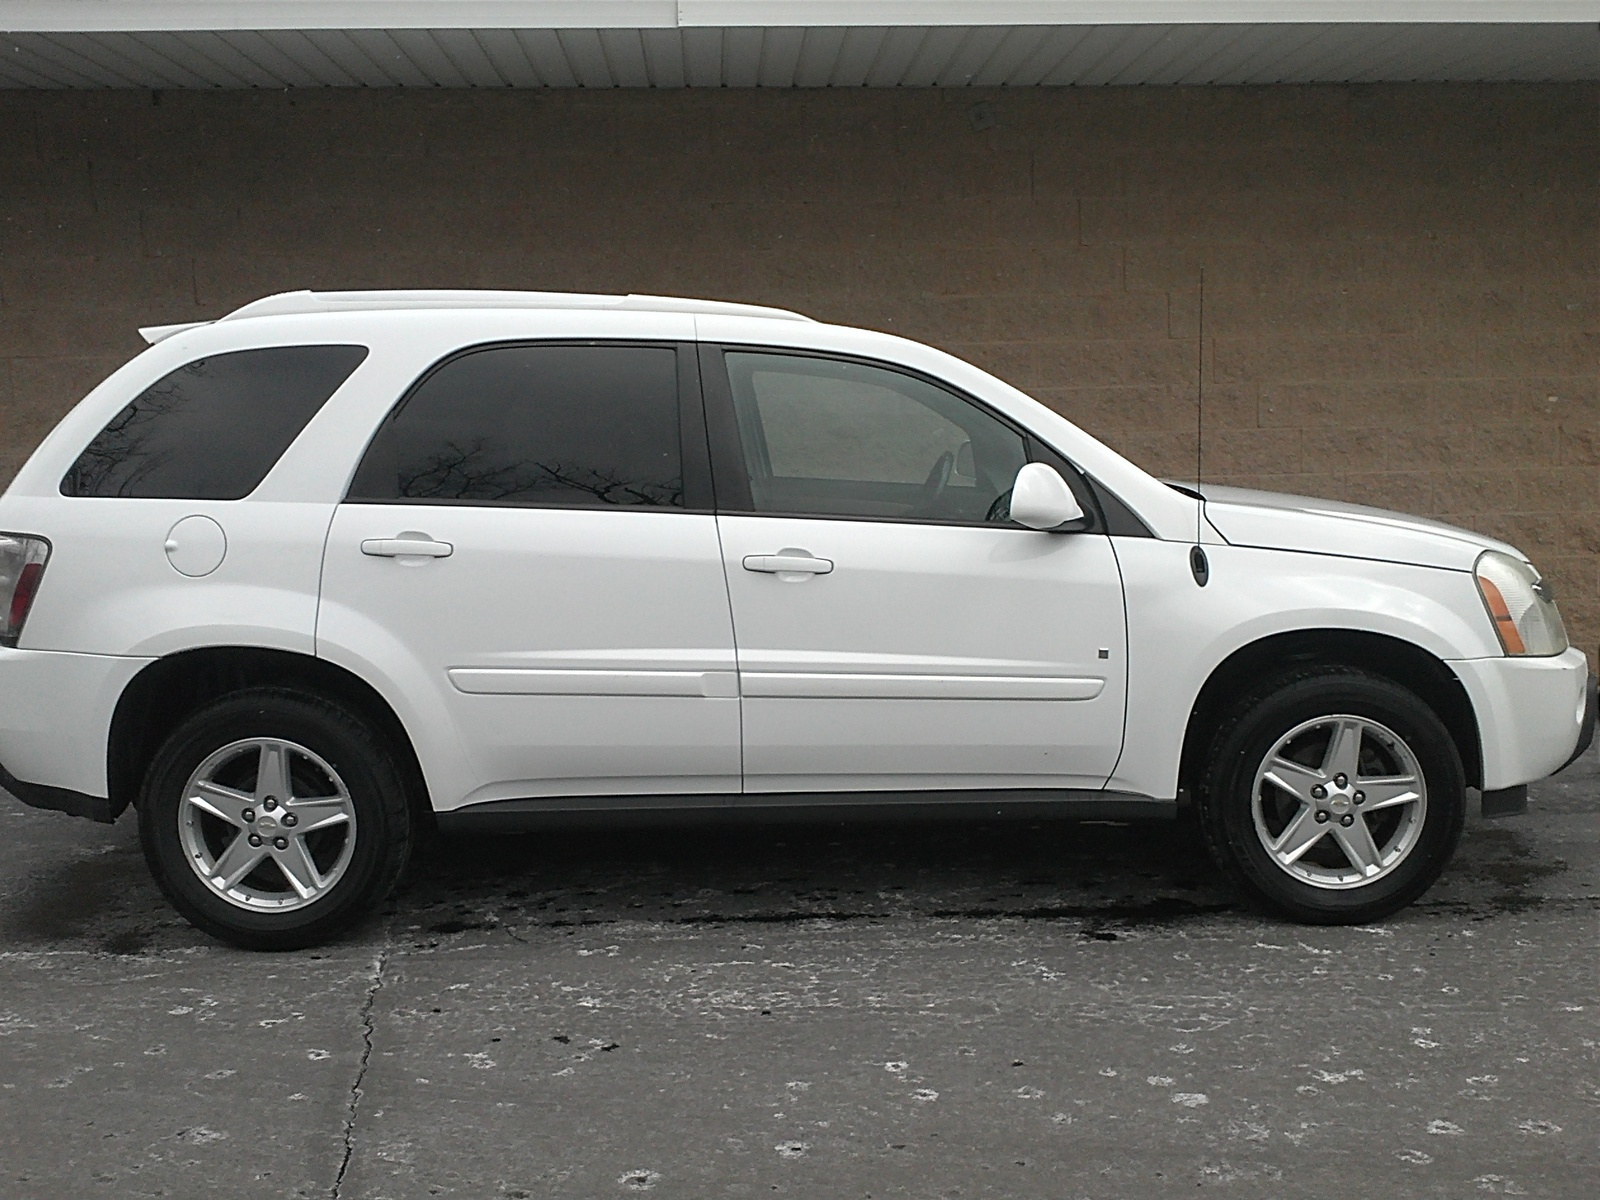 2006 chevrolet equinox reviews ratings yahoo. Black Bedroom Furniture Sets. Home Design Ideas